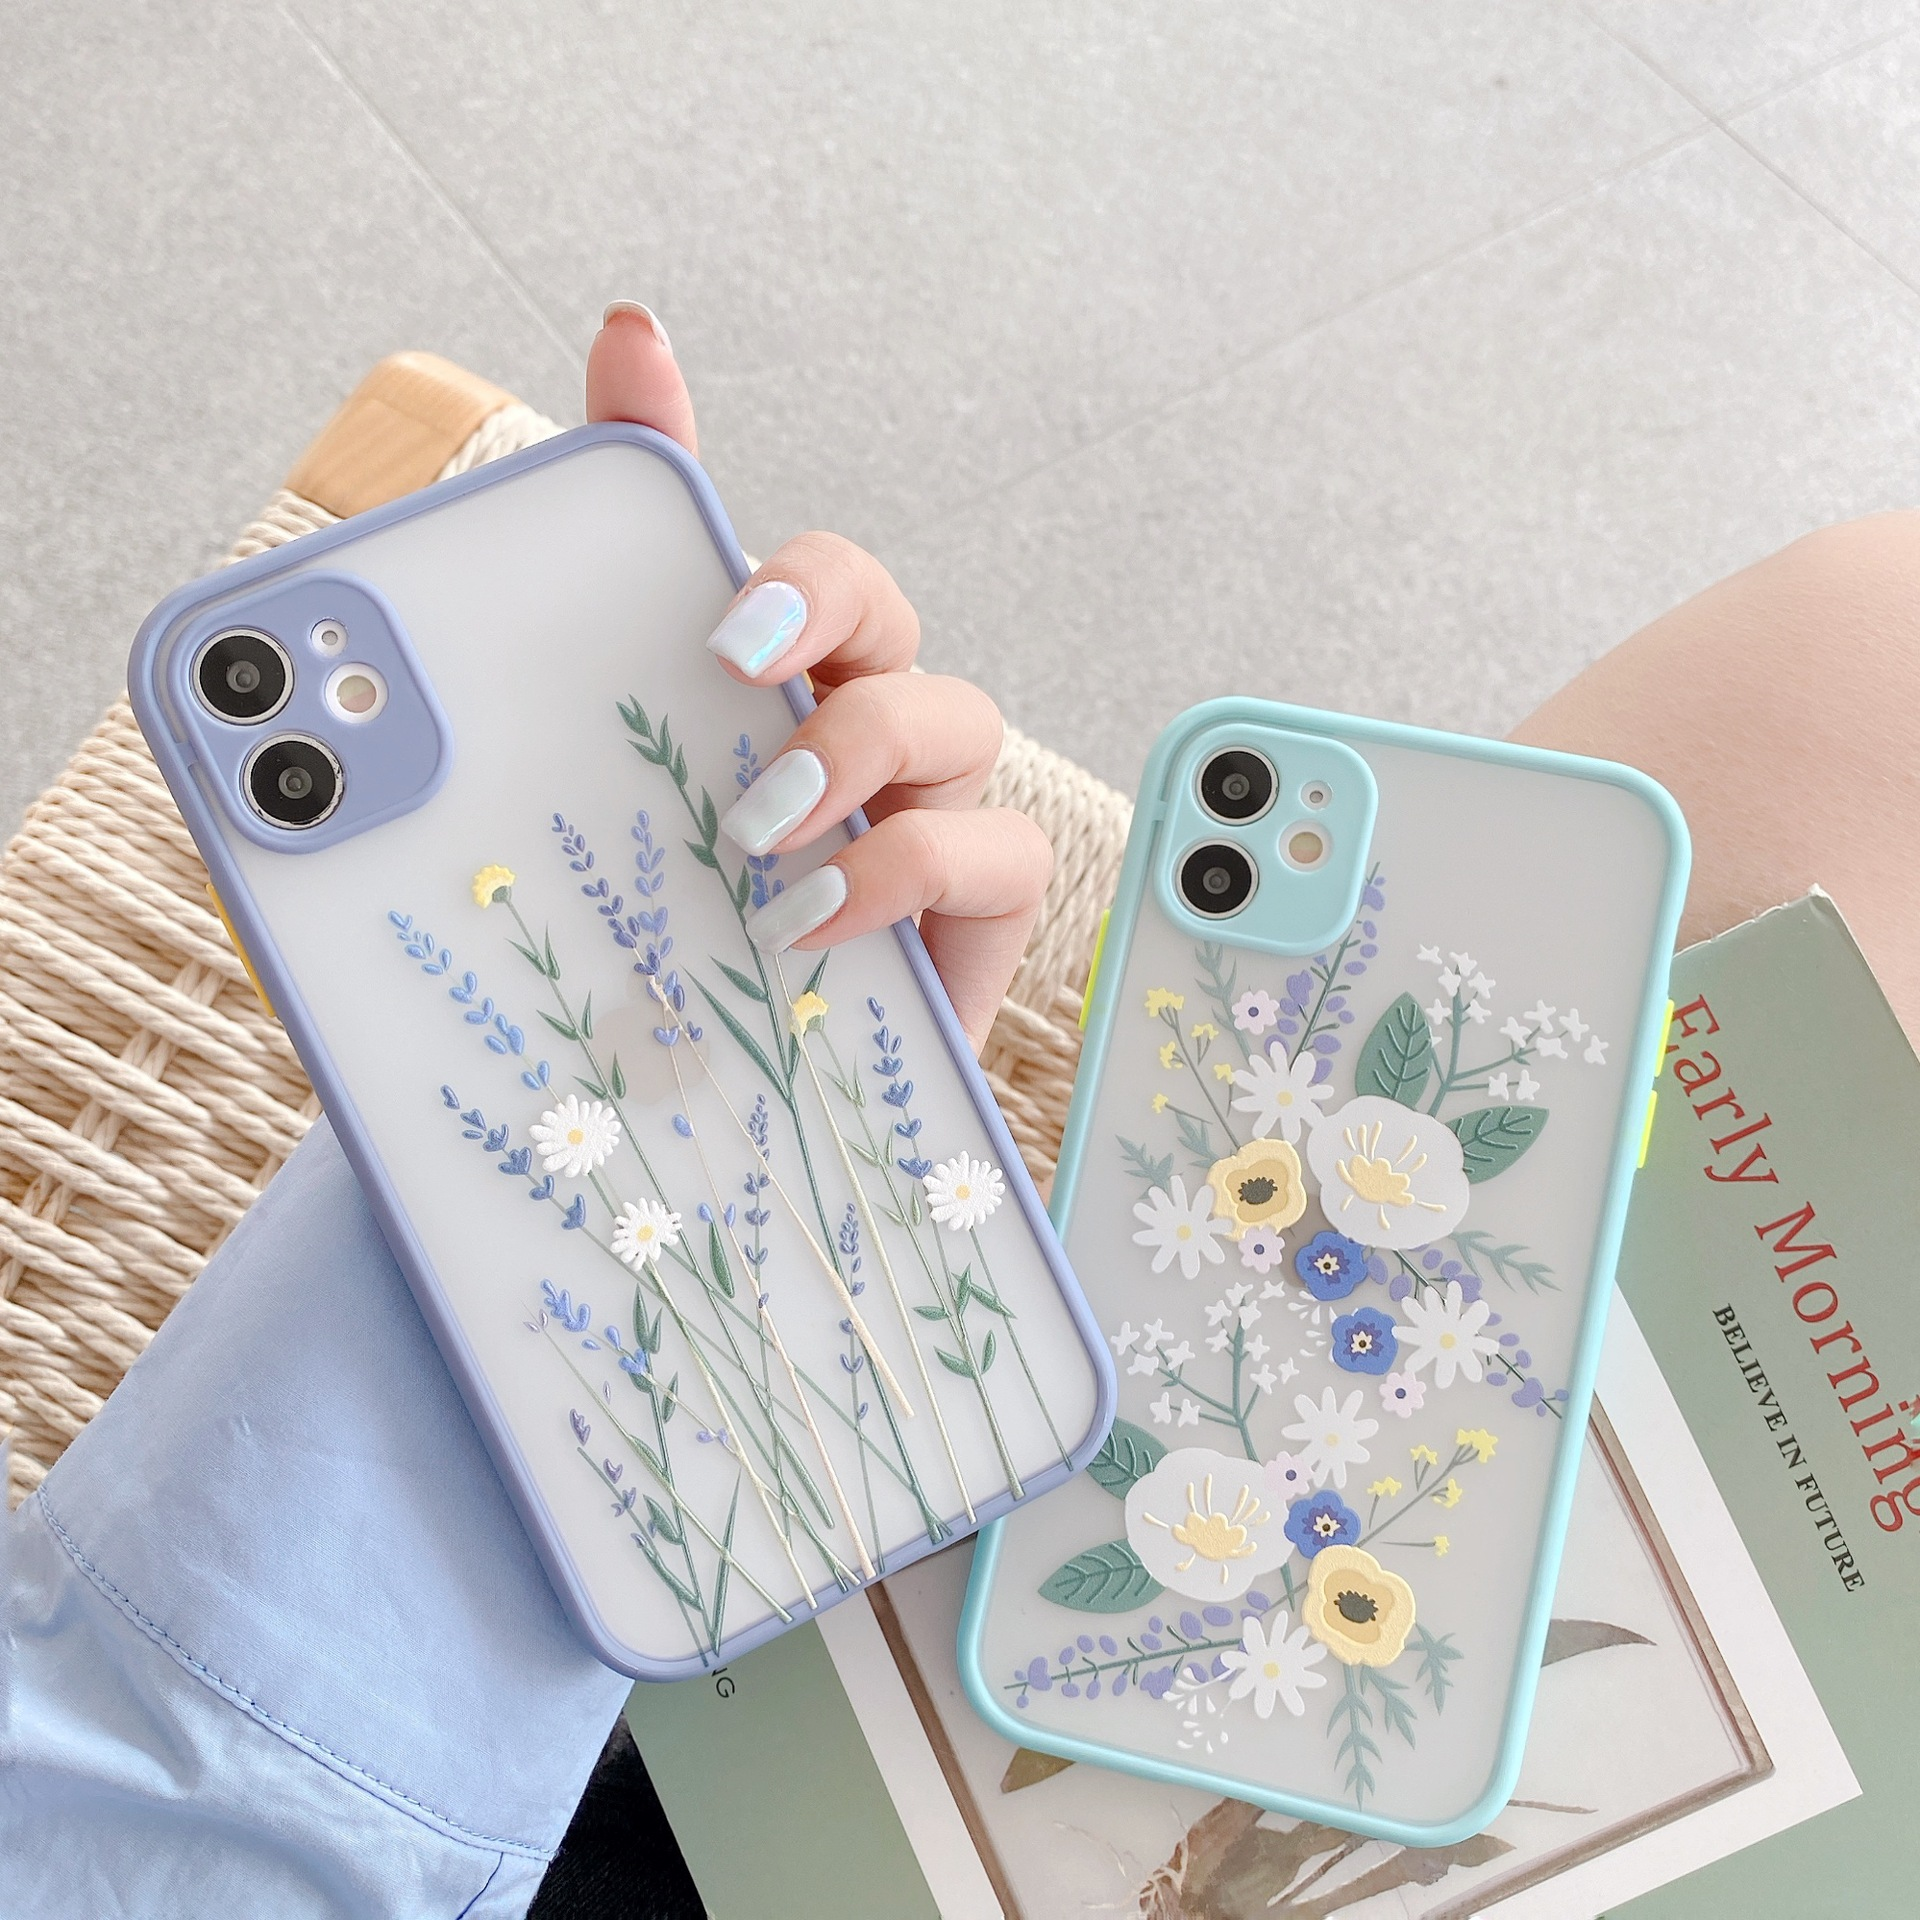 Luxury 3D Relief Flower Case For iPhone 12 Mini 11 Pro Max X XR XS Max 7 8 Plus Soft Bumper Transparent Matte PC Back Cover